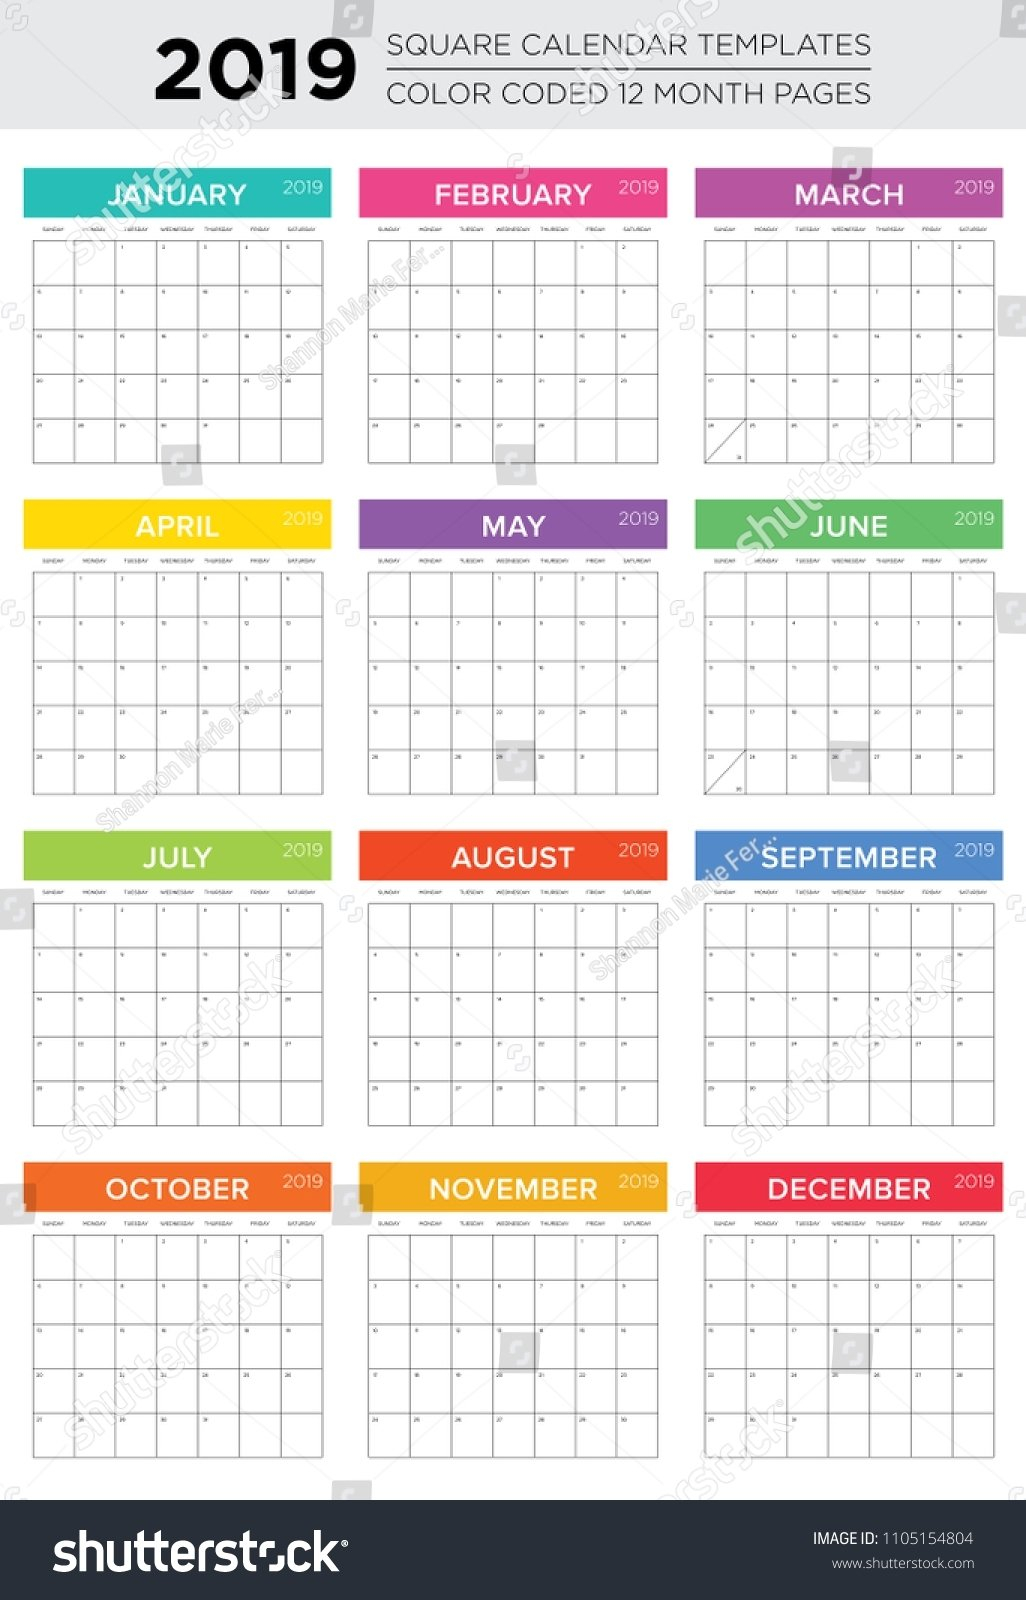 Color Coded Calendar Months | Calendar Template 2020 Color Coded Schedule Template